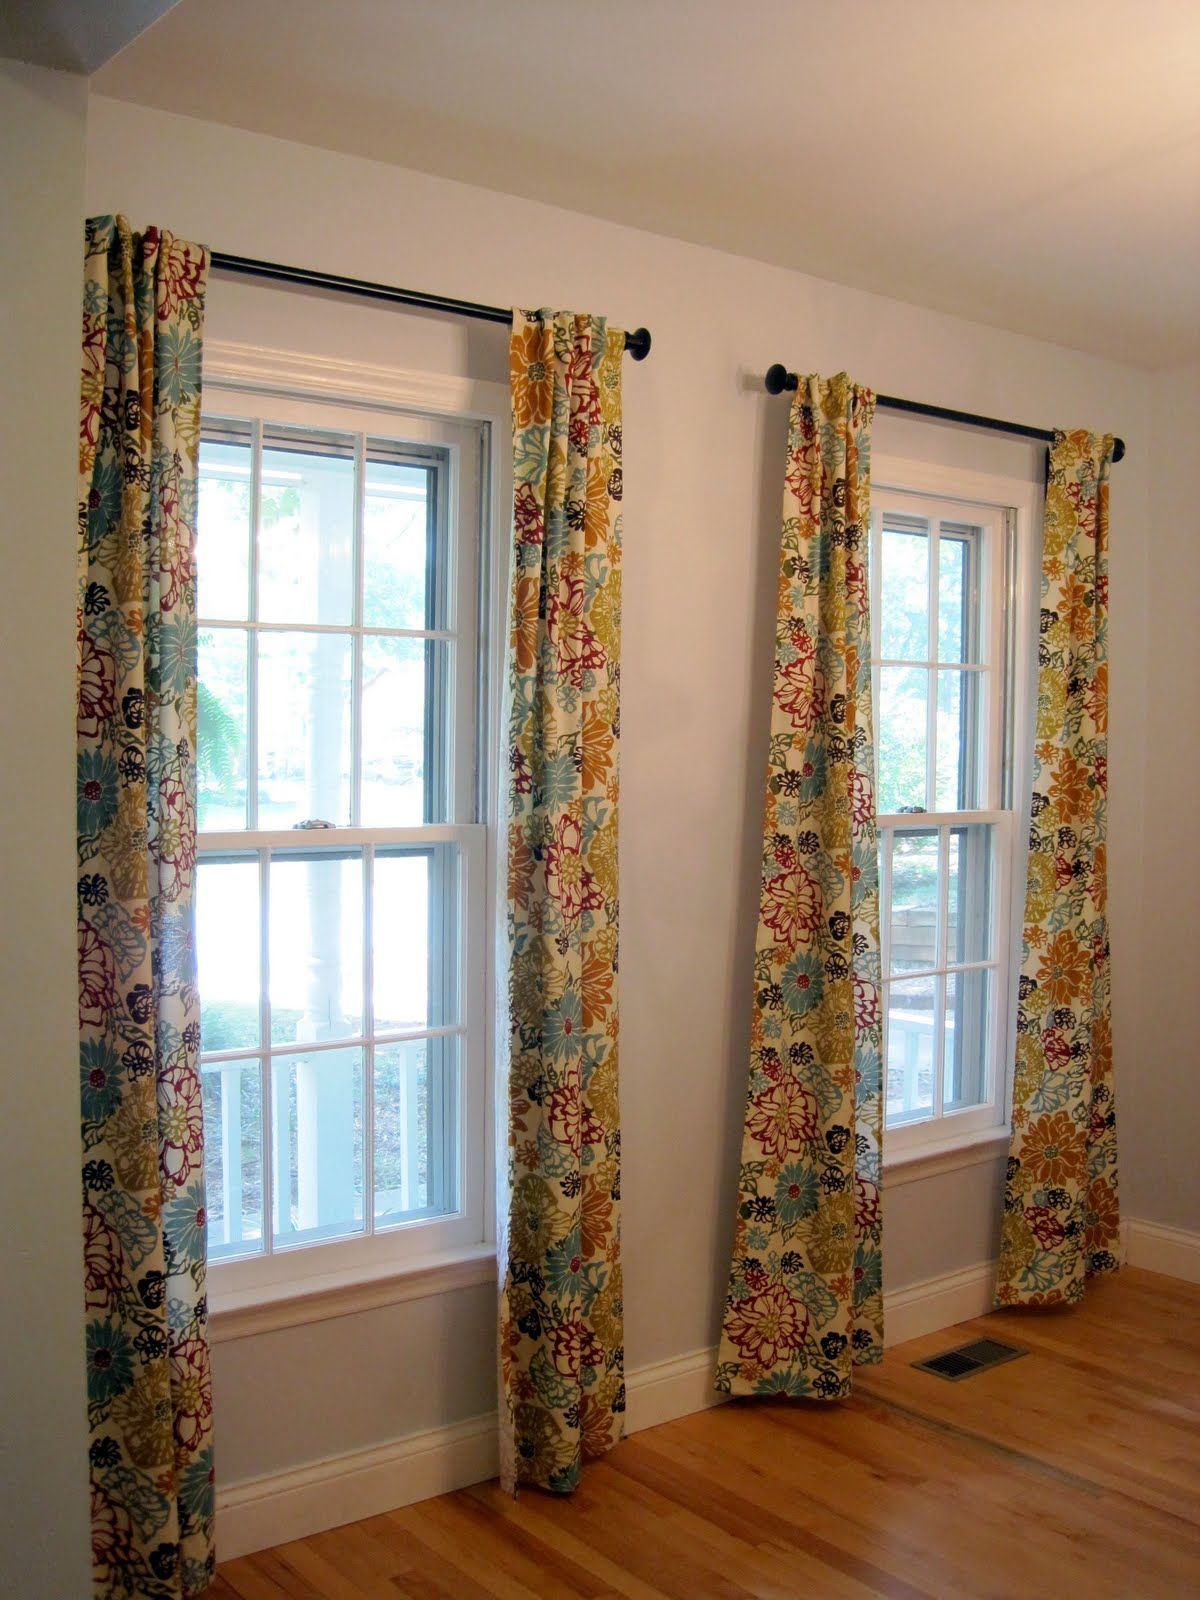 All time best diy ideas bathroom curtains and rugs living room